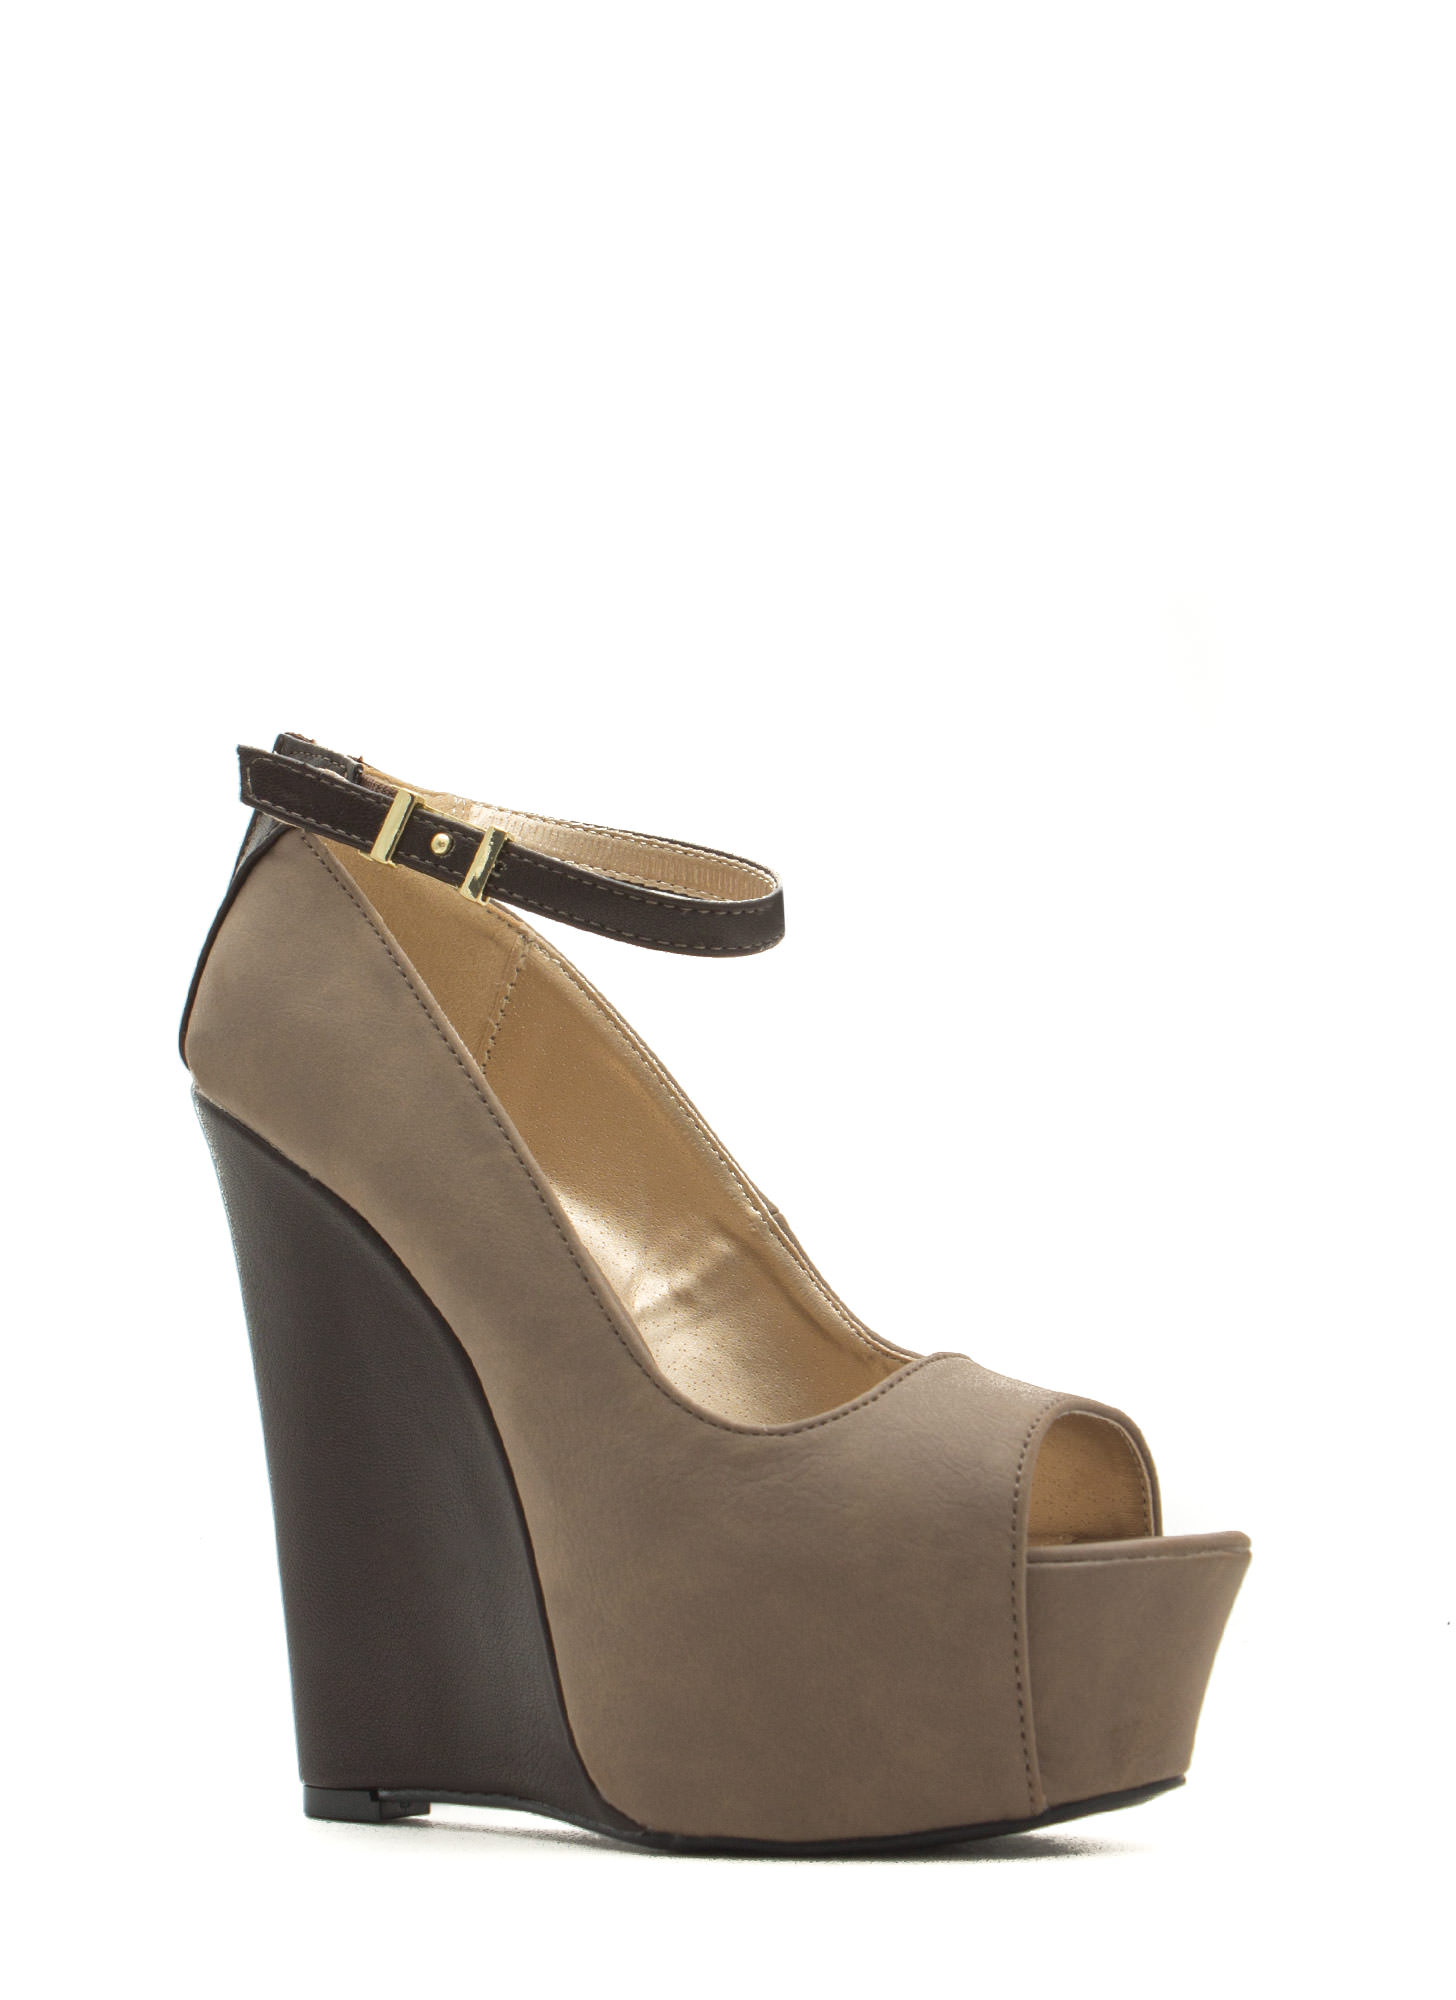 Peep Show Ankle Strap Platform Wedges TAUPE